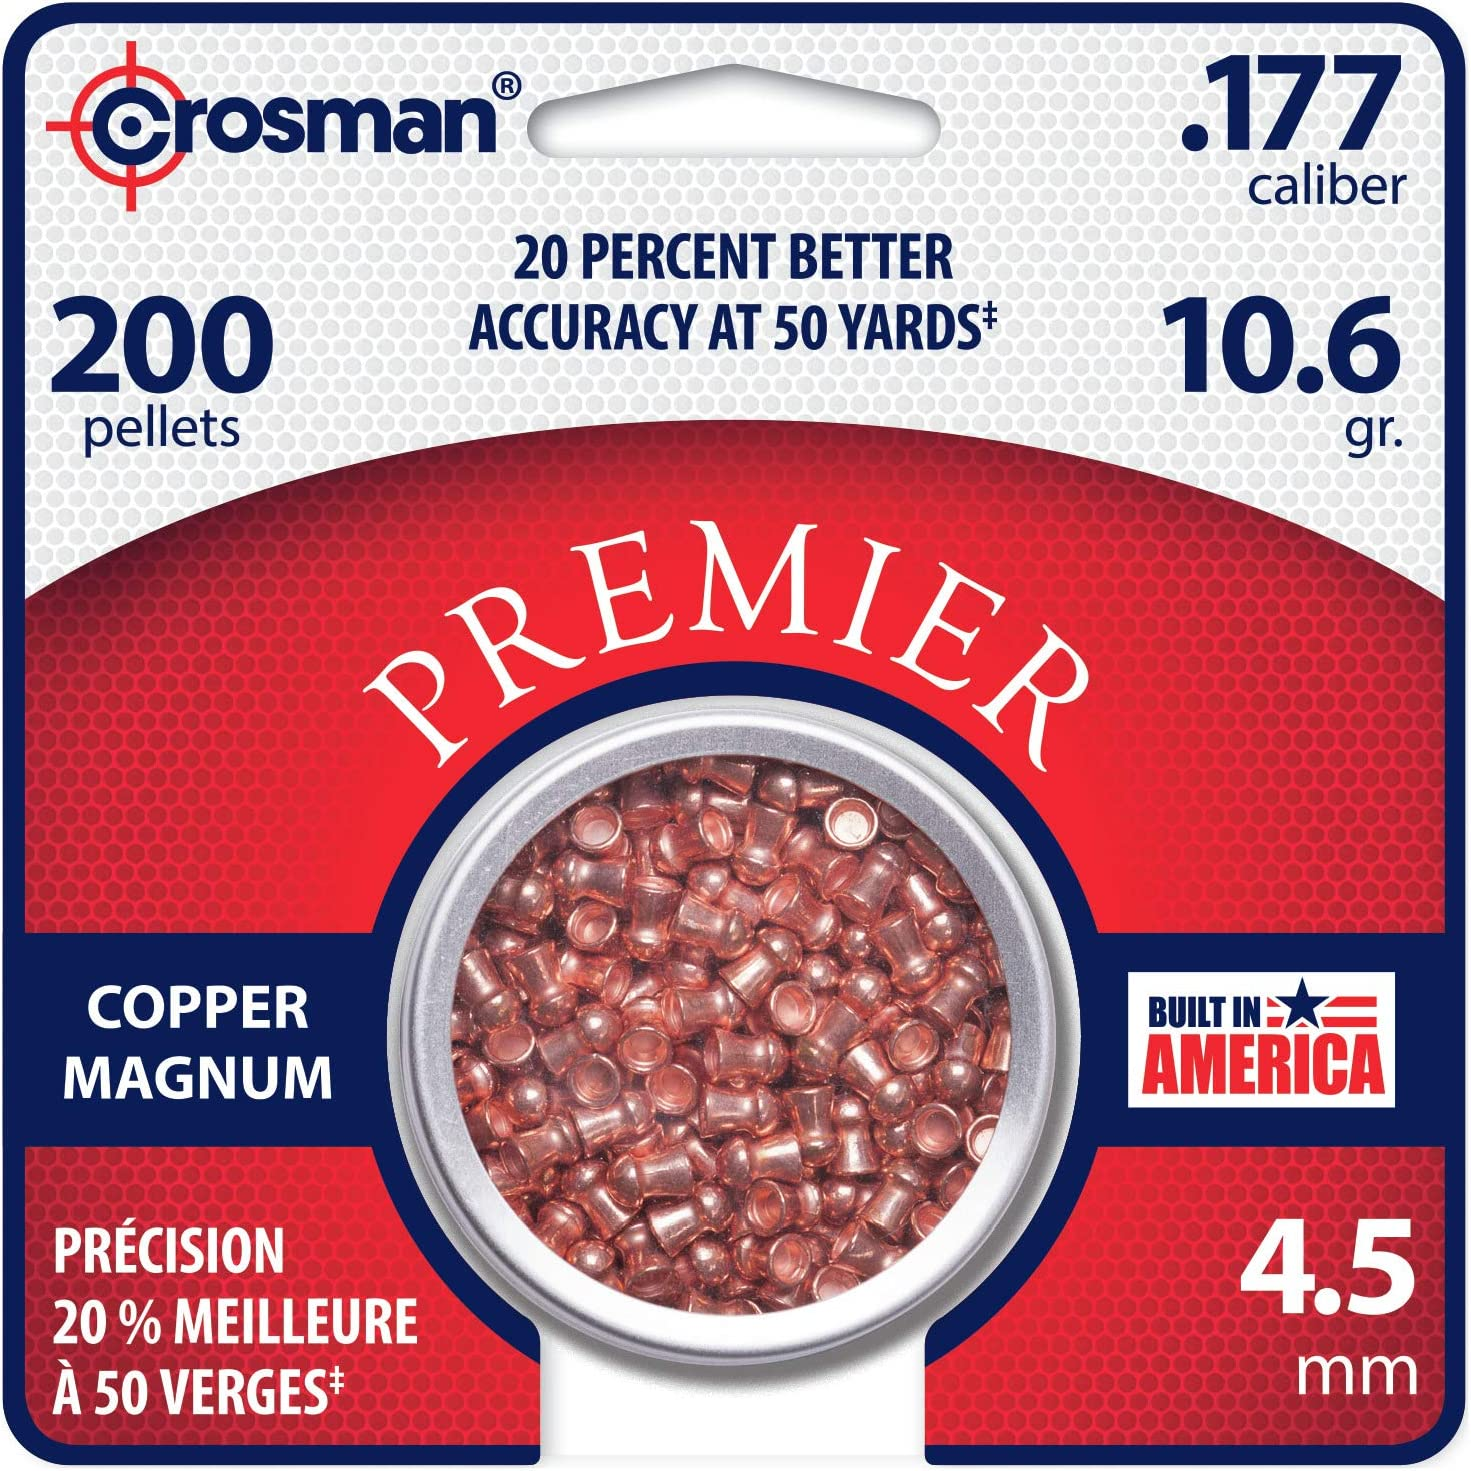 Crosman Copper Magnum Domed Pellets for Use with Pellet Air Rifles and Air Pistols